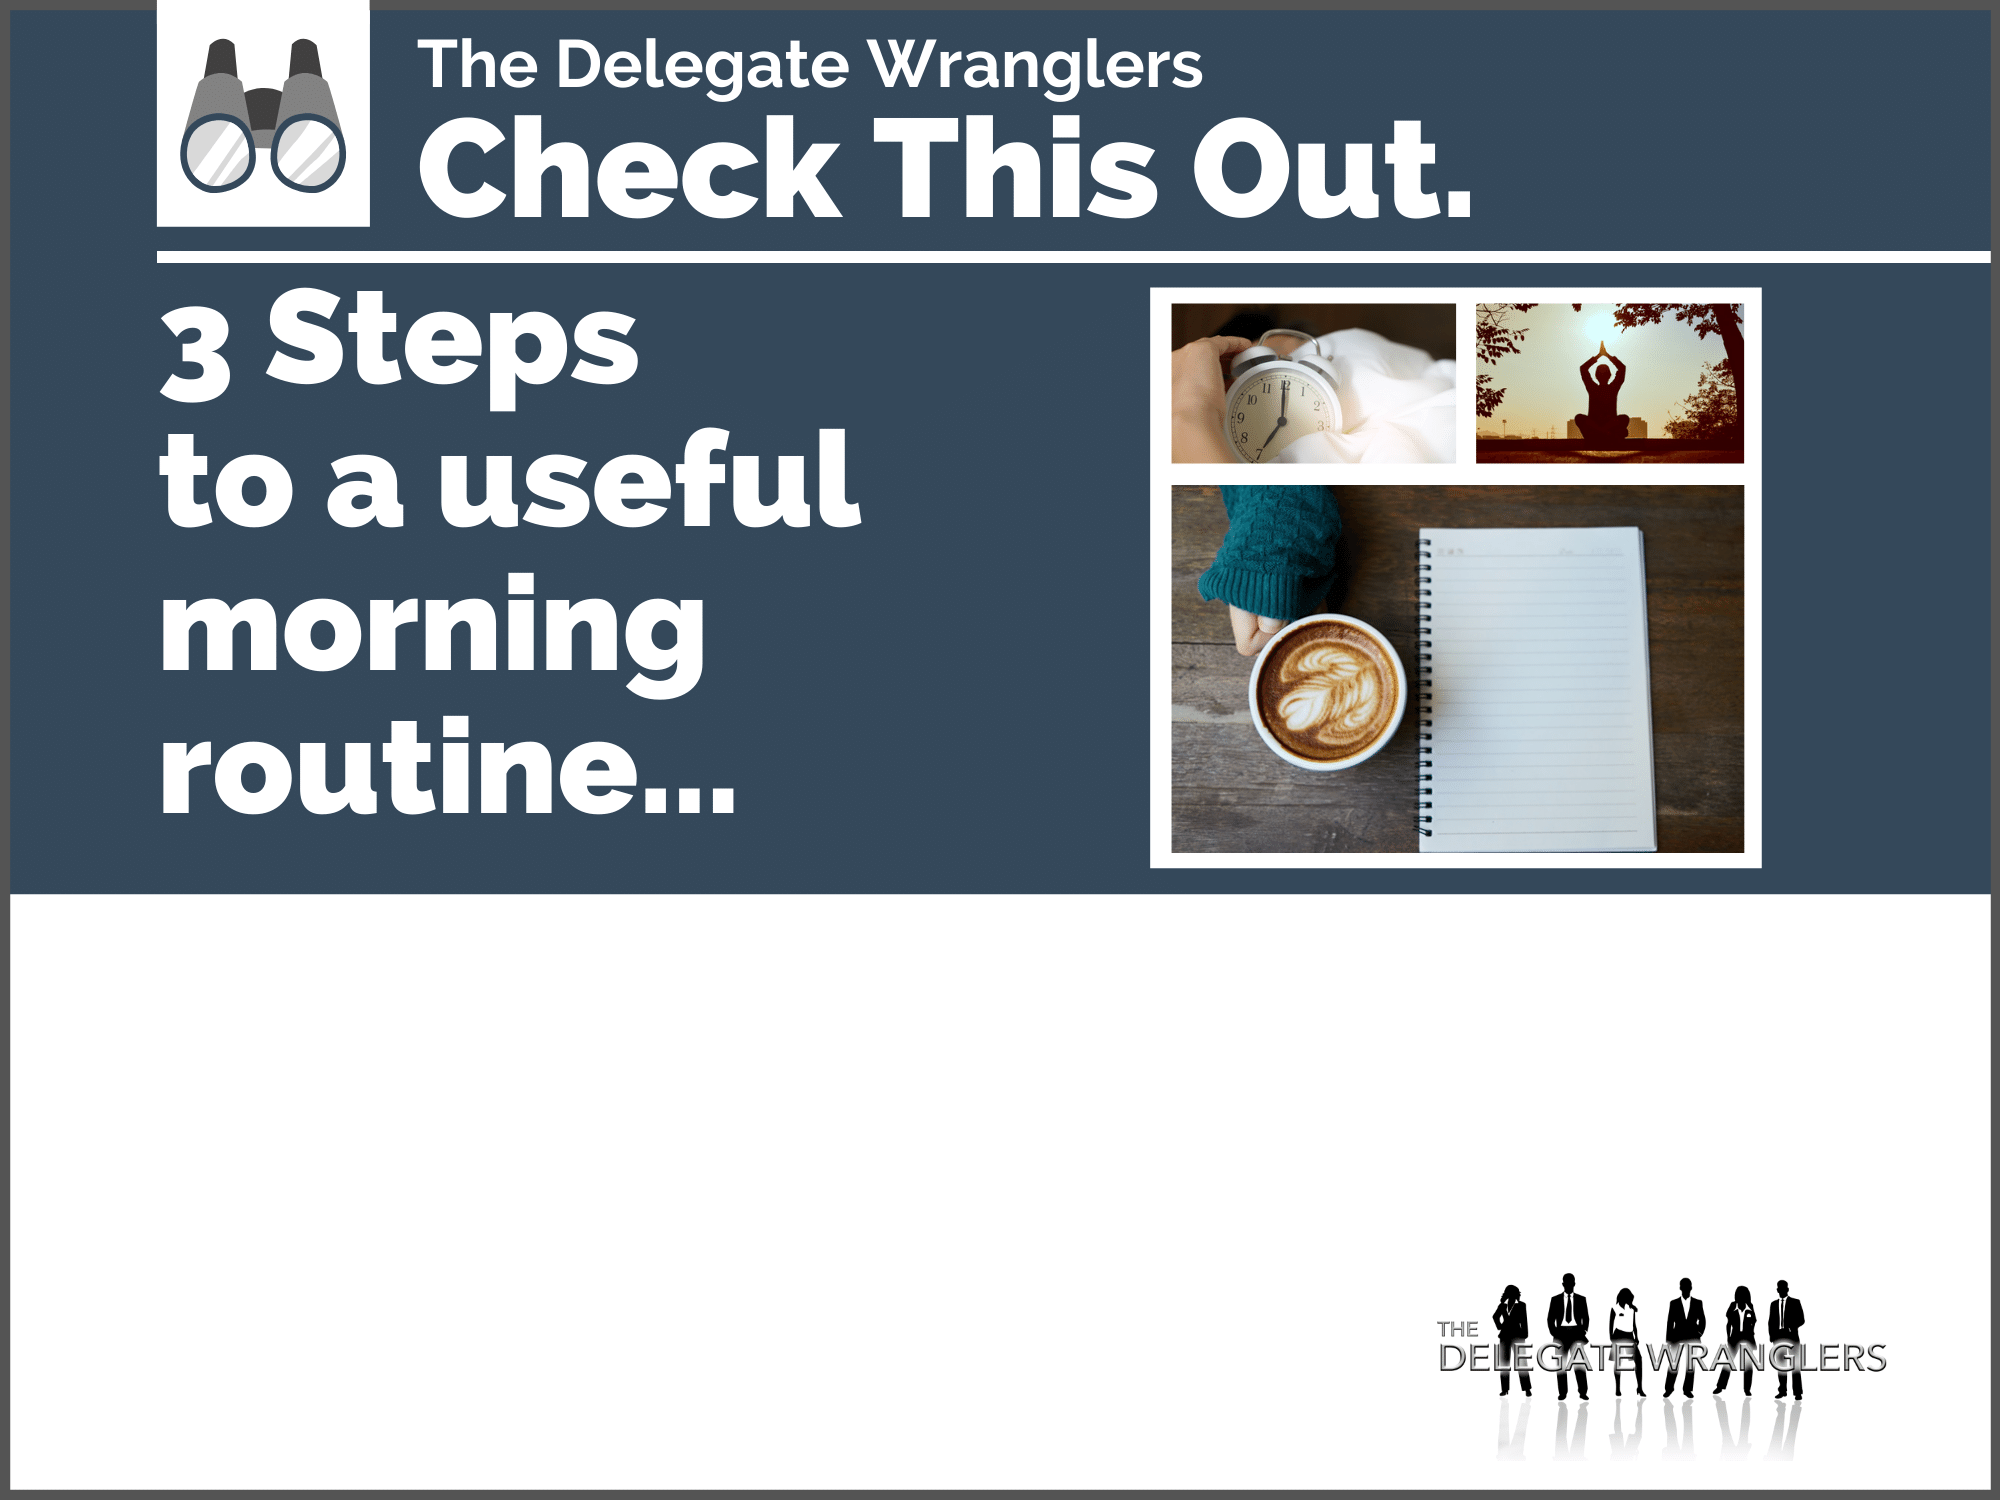 3 steps to a useful morning routine